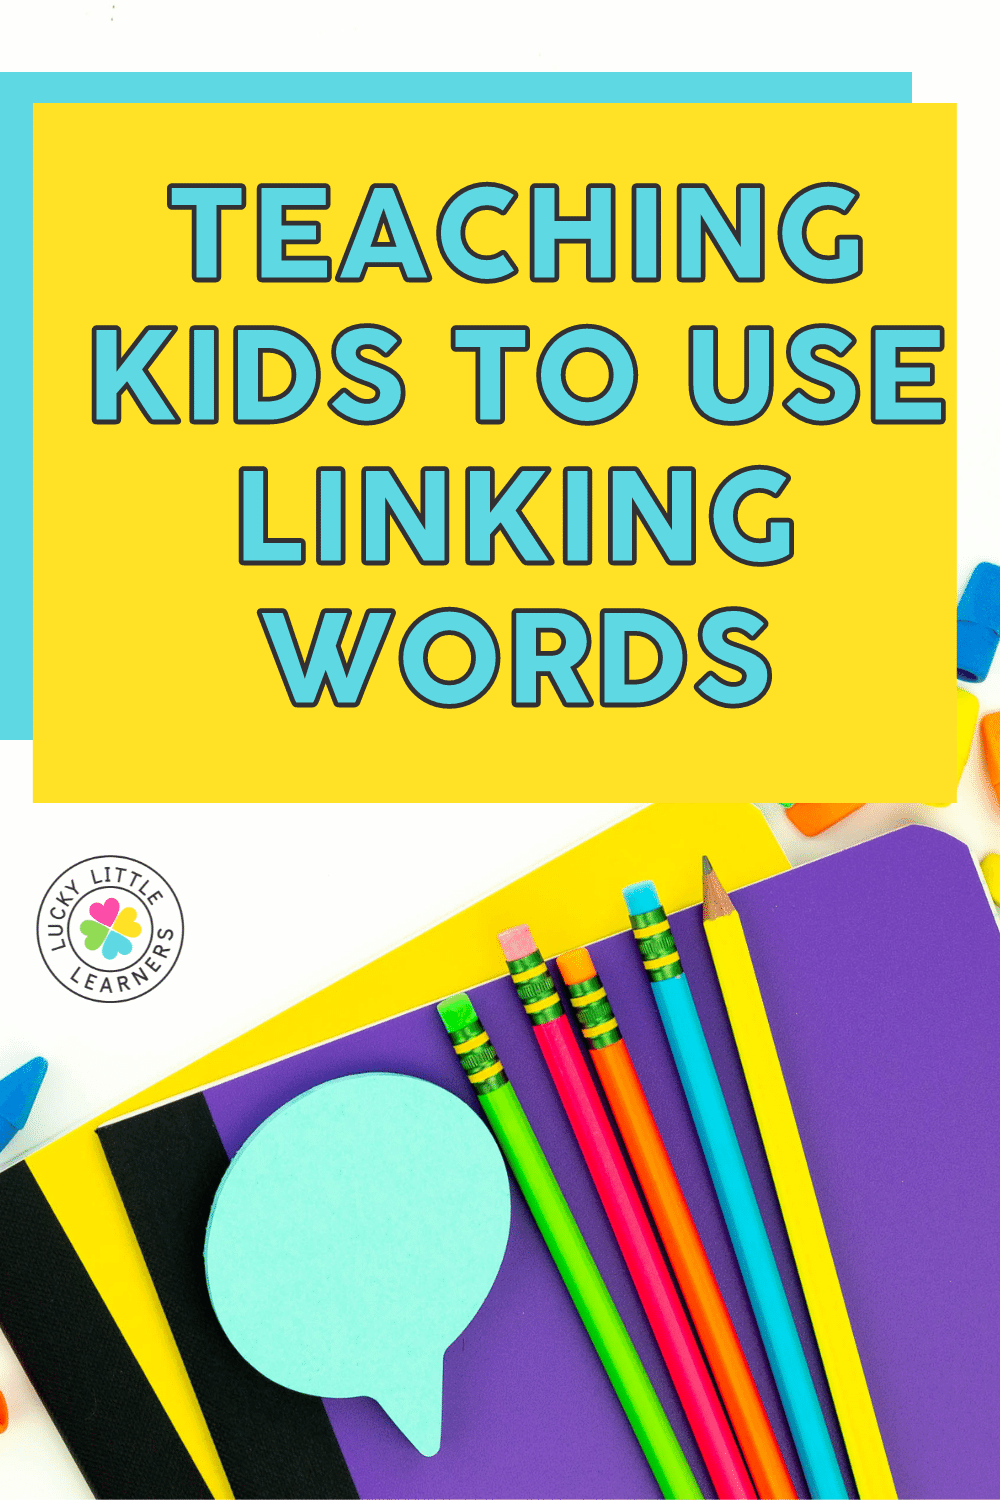 ideas for teaching kids to use linking words in their writing